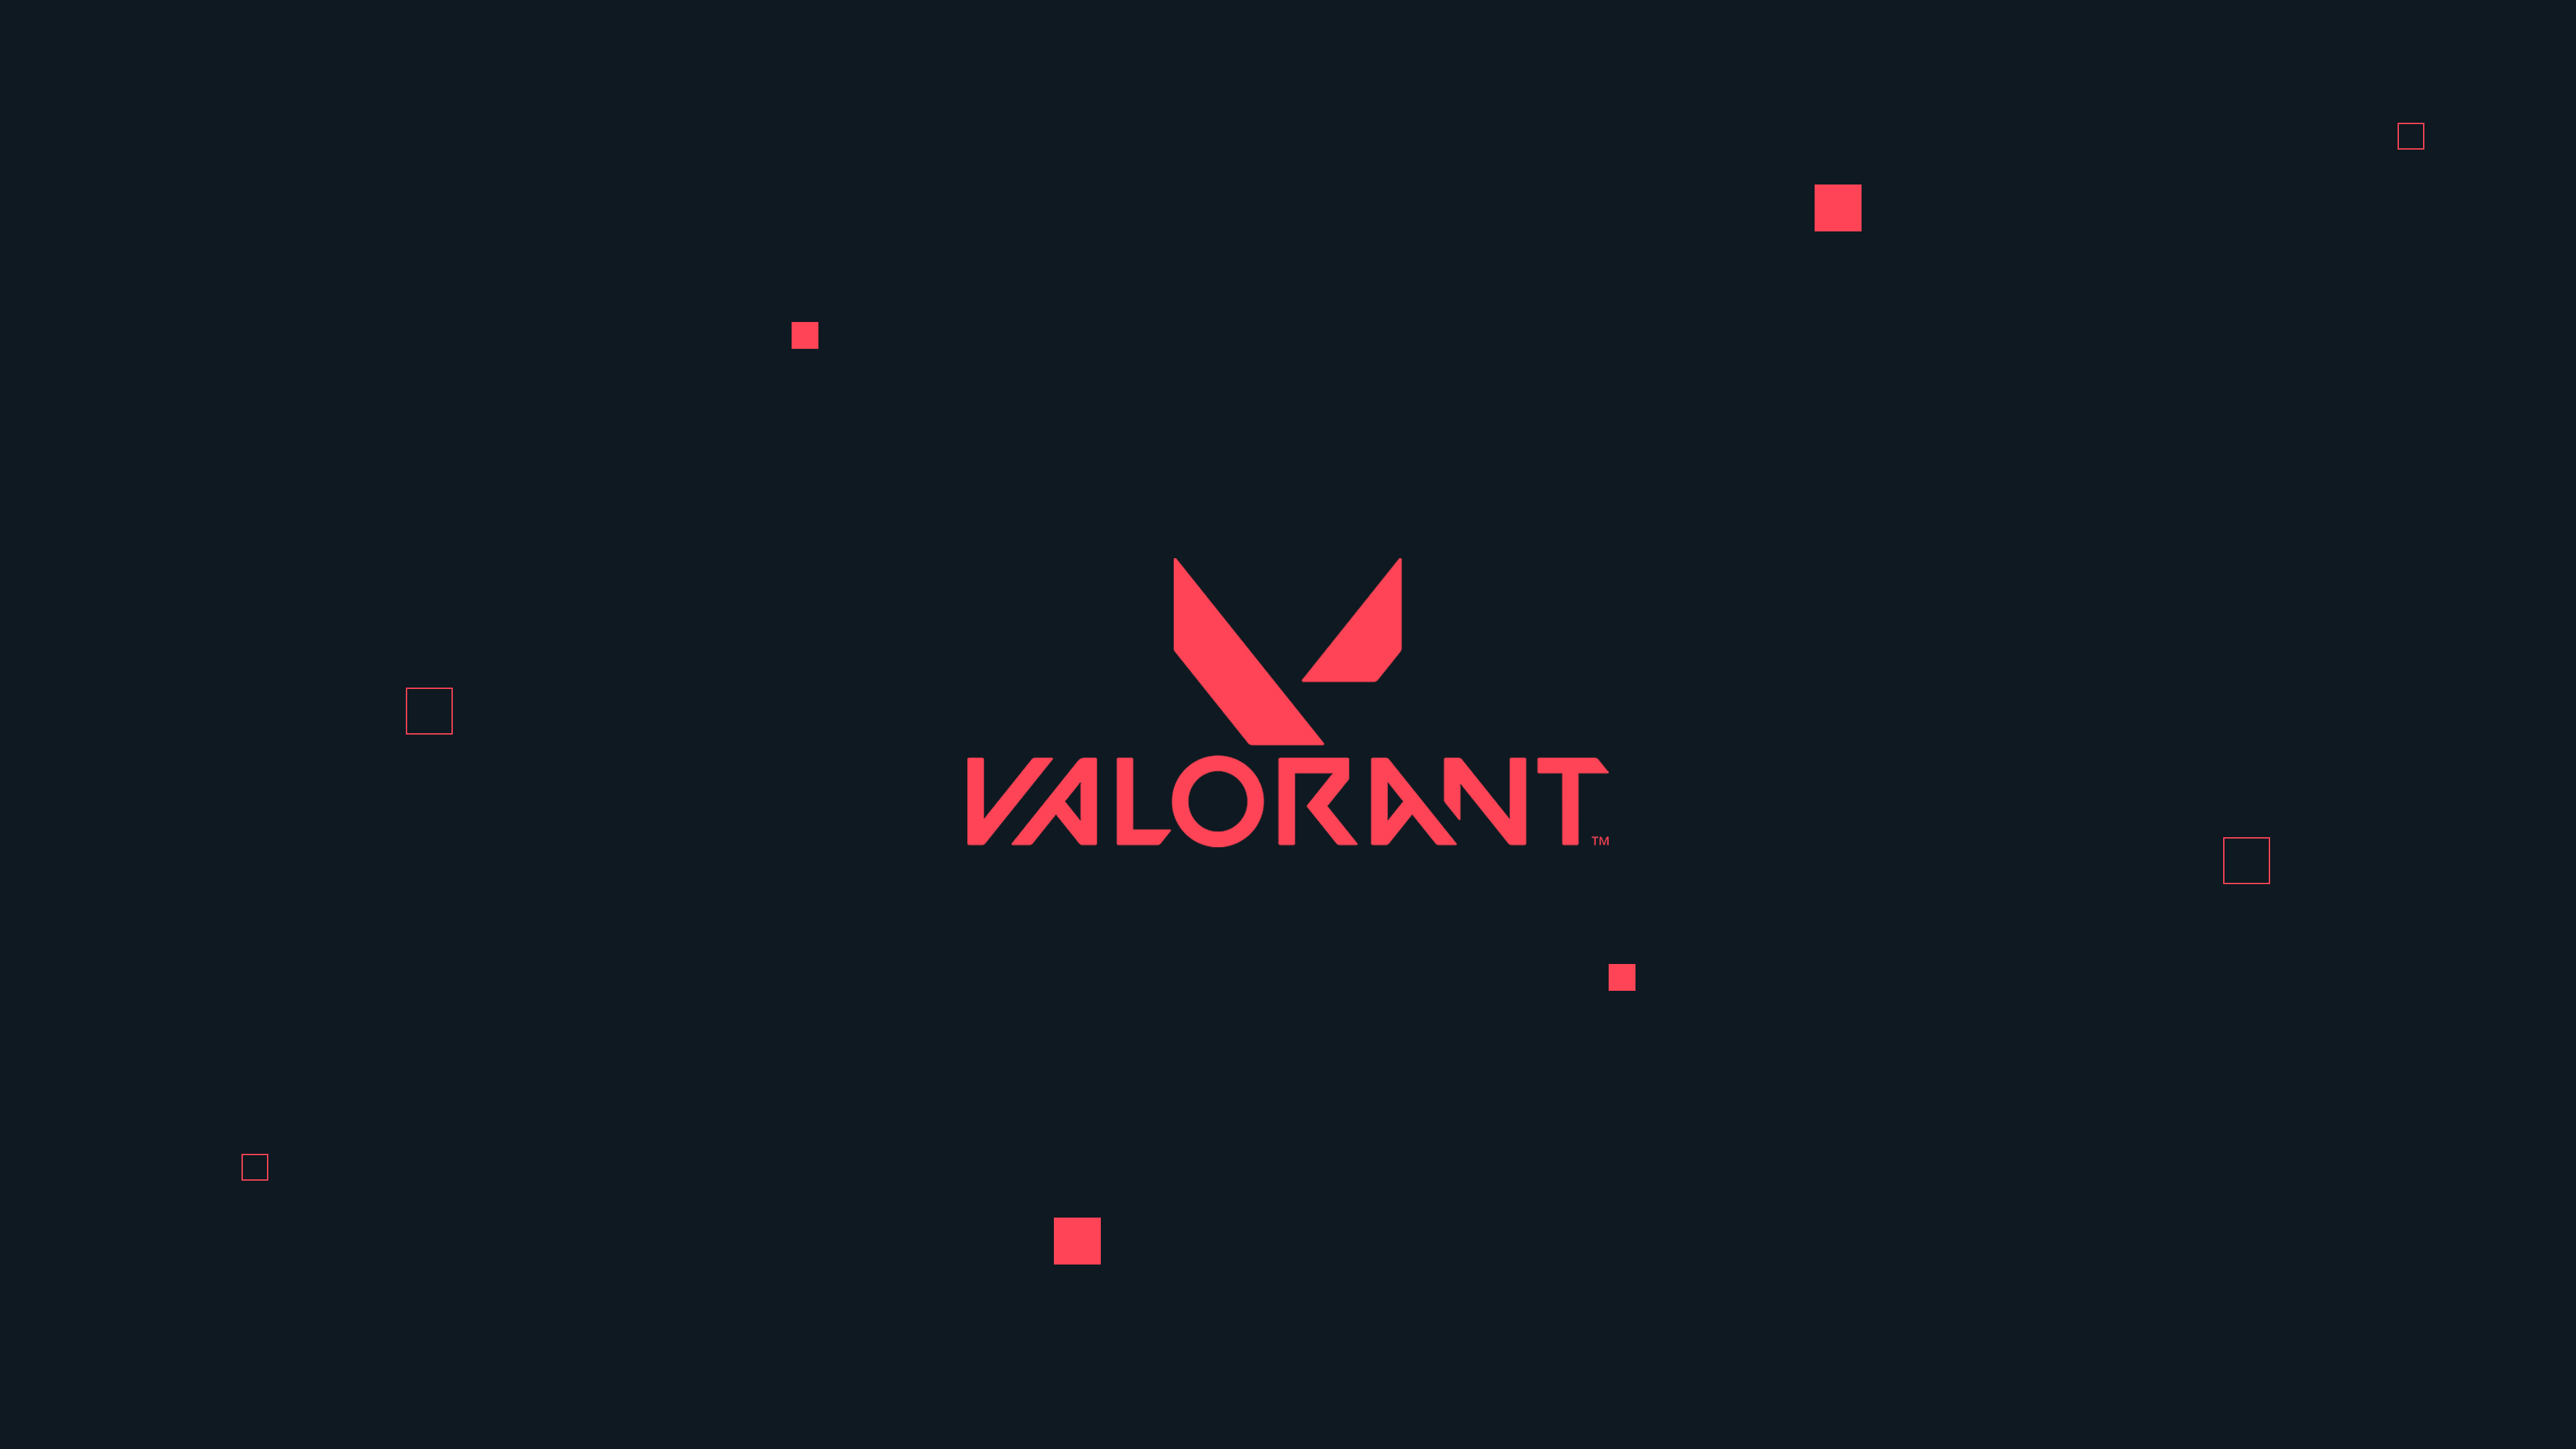 1080x2280 Valorant Logo 4k One Plus 6 Huawei P20 Honor View 10 Vivo Y85 Oppo F7 Xiaomi Mi A2 Hd 4k Wallpapers Images Backgrounds Photos And Pictures